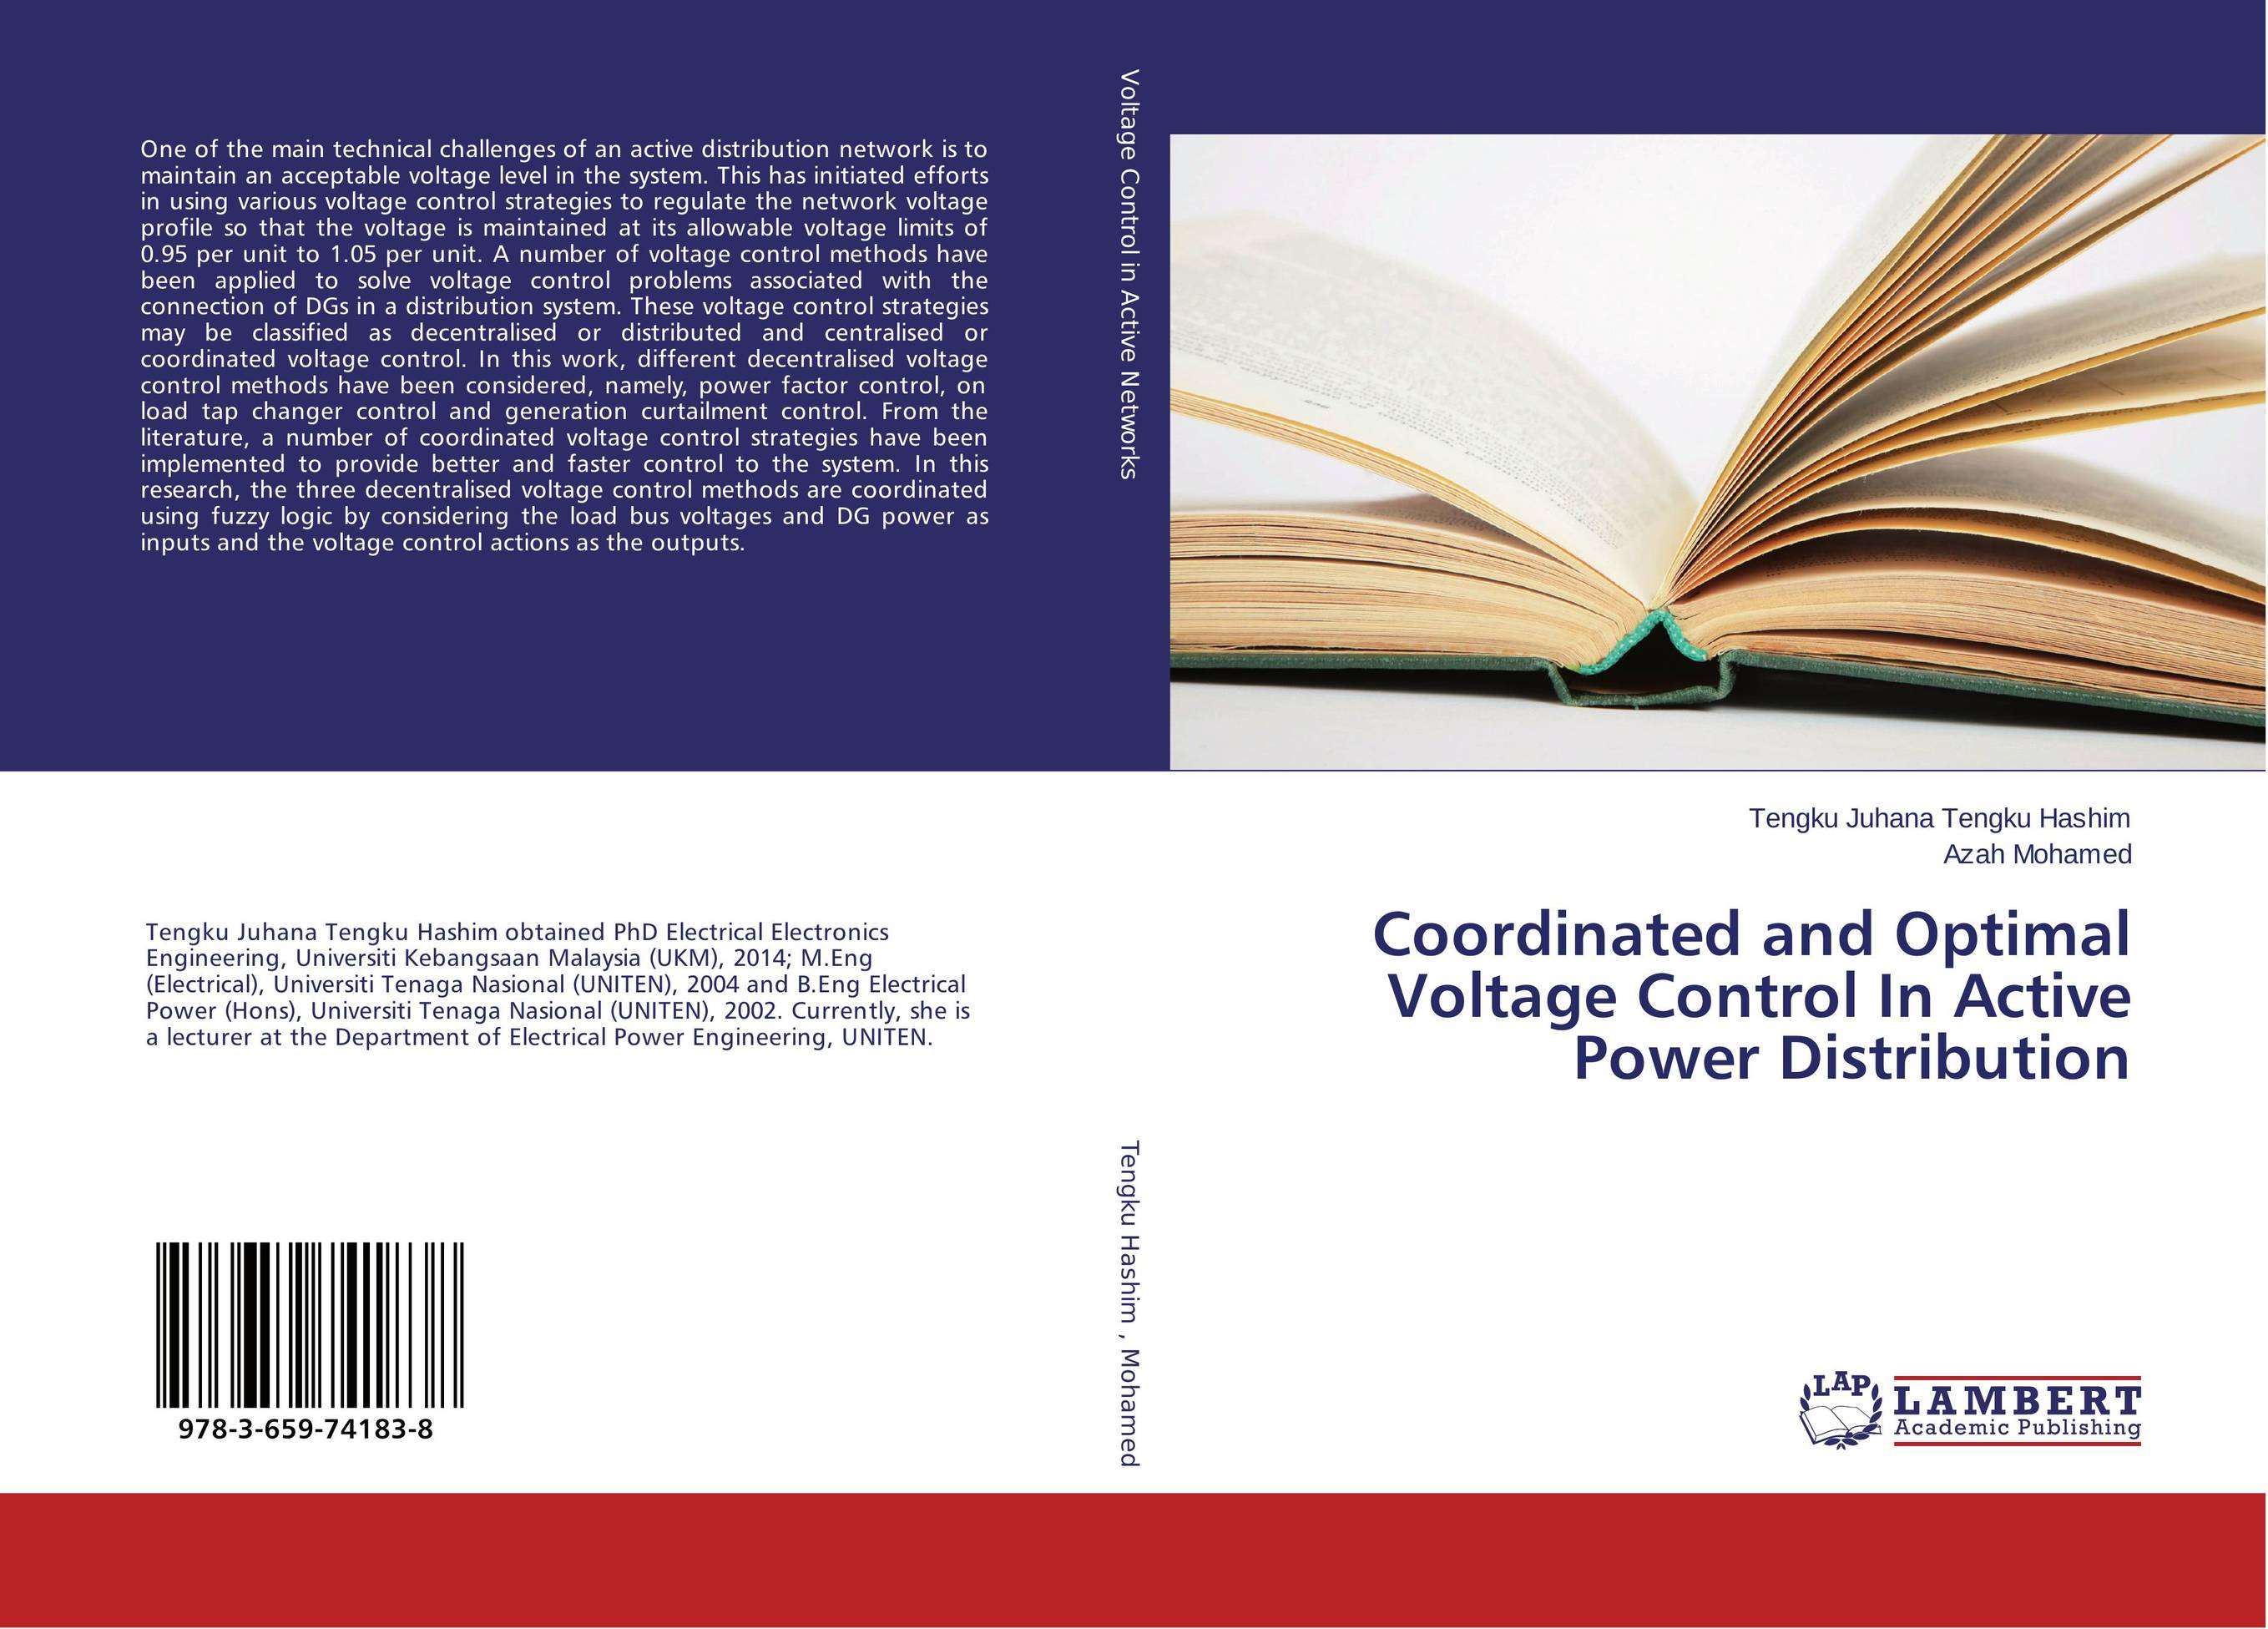 Coordinated and Optimal Voltage Control In Active Power Distribution